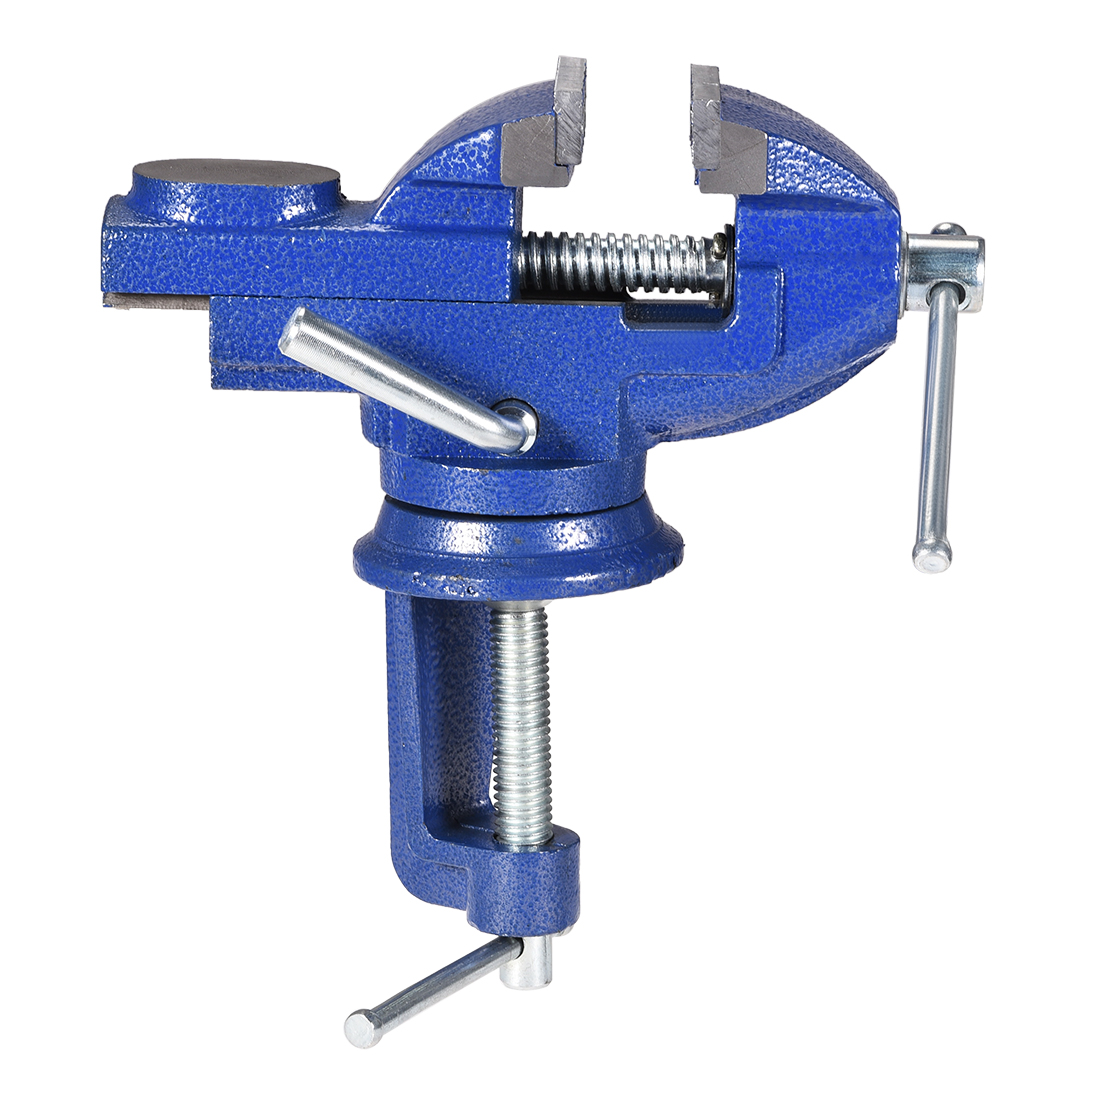 Clamp Vise 50mm Carbon Steel Jaws 360 Degree Swivel Table Bench Vise